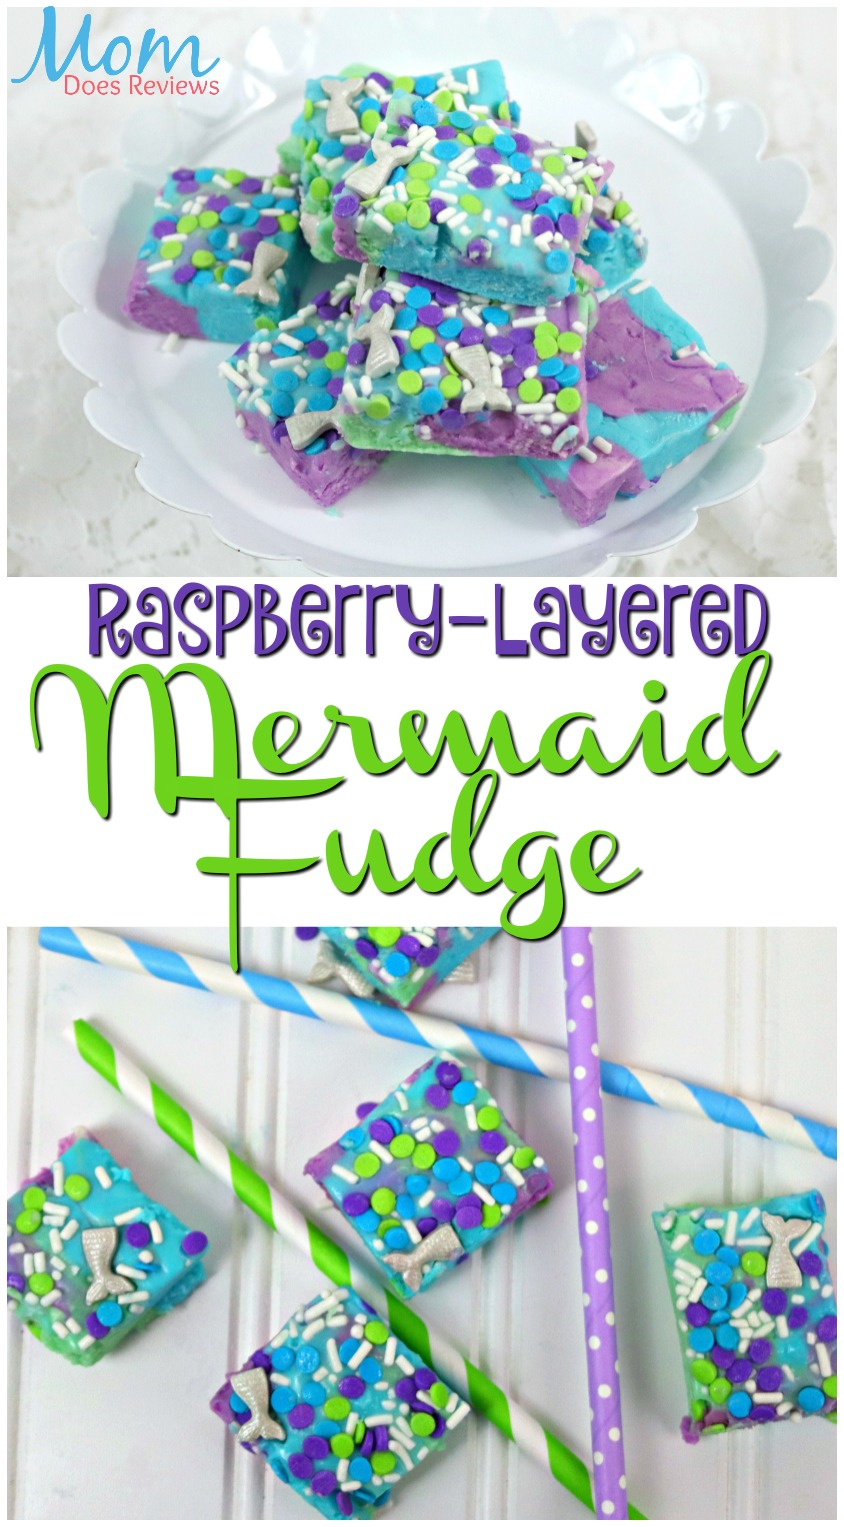 Raspberry-Layered Mermaid Fudge #funfood #magical #recipe